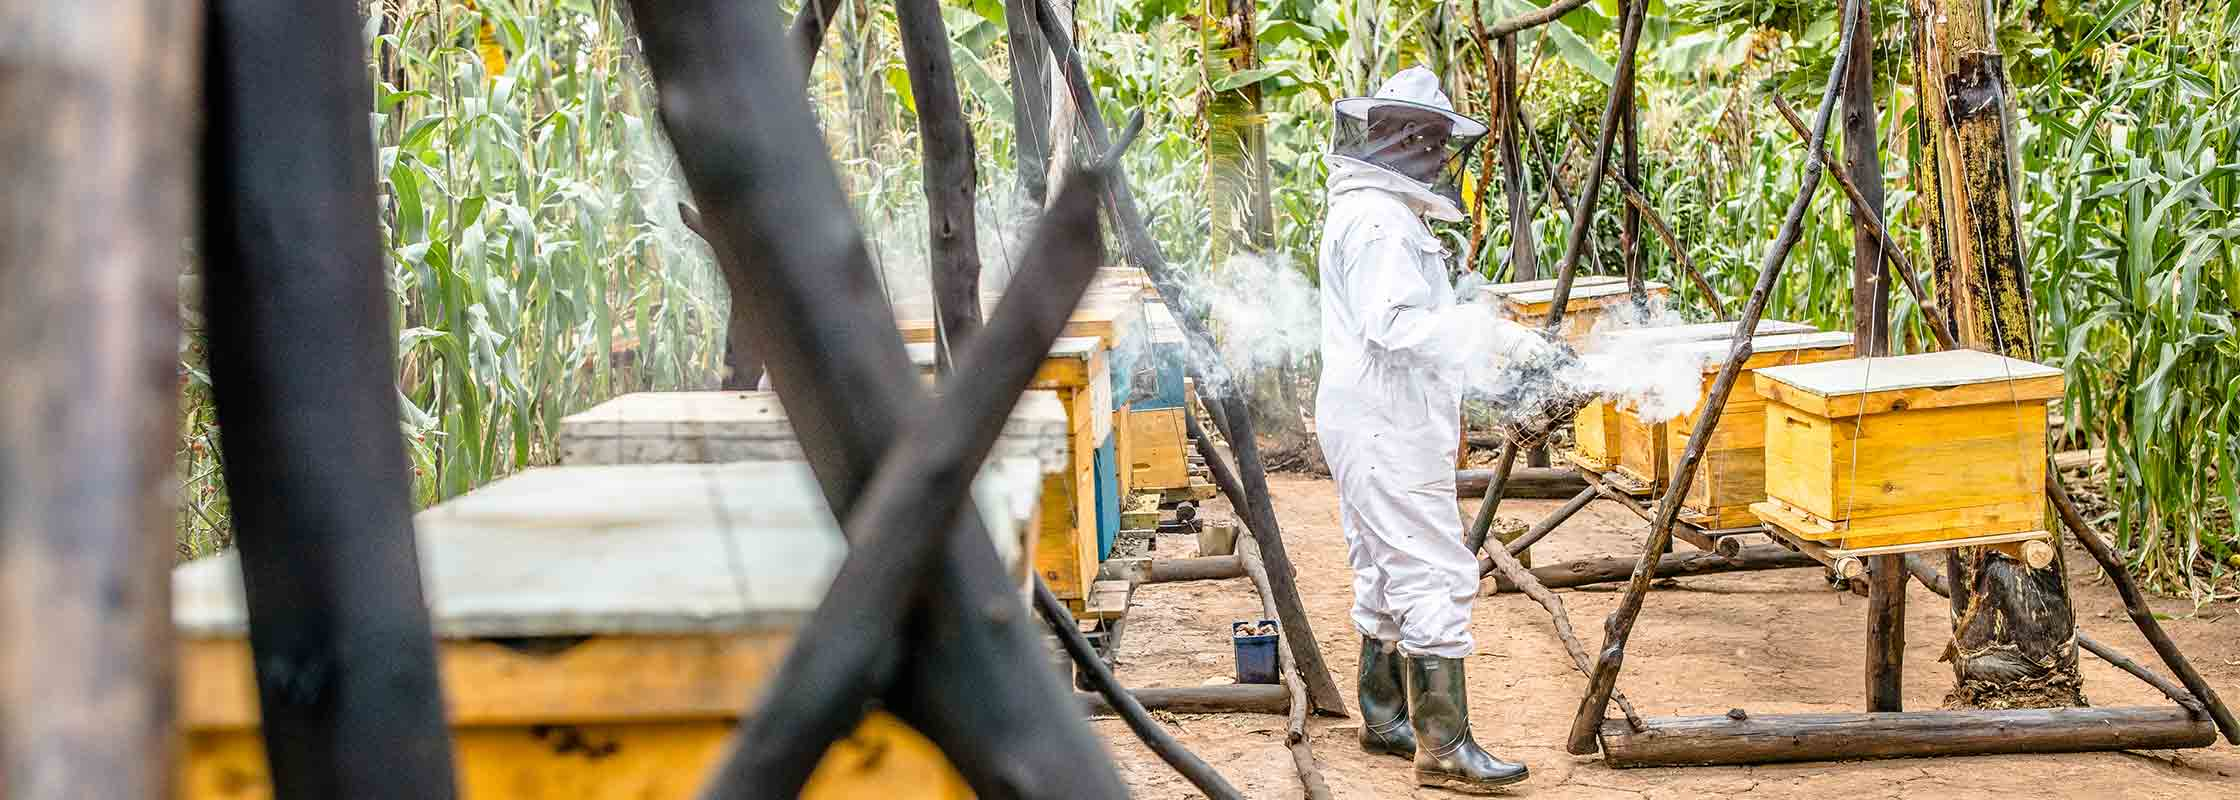 Bee keeper smoking out hives in a forested area